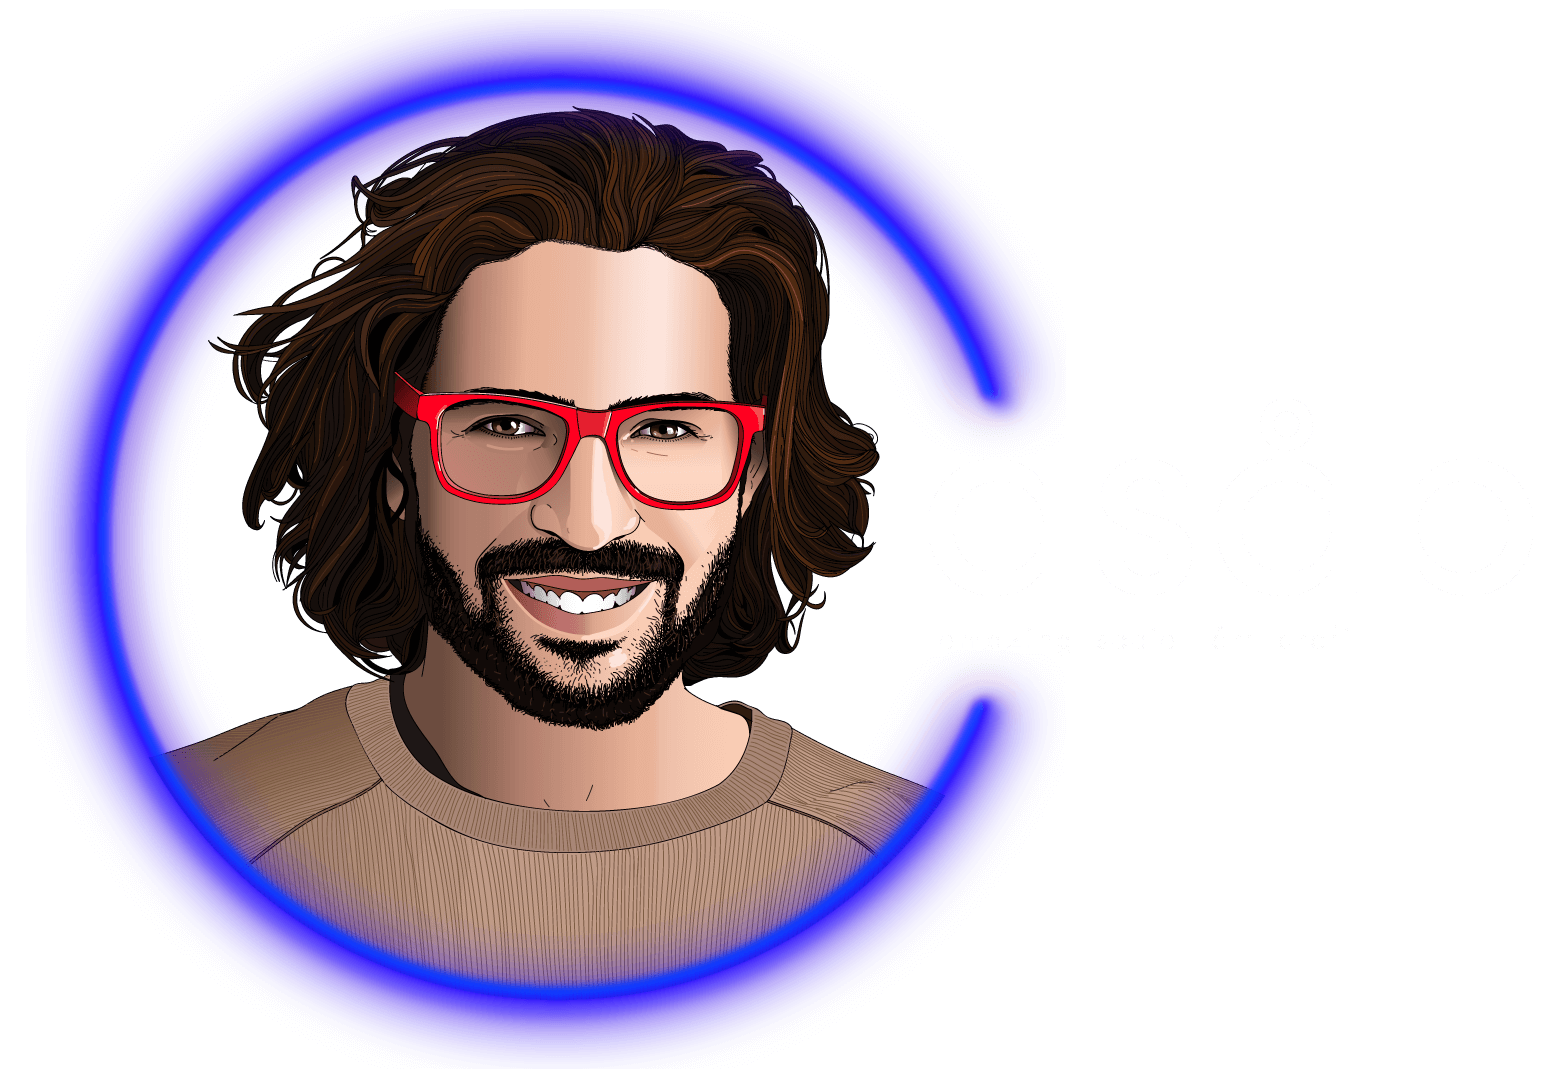 asap amazing social art profil